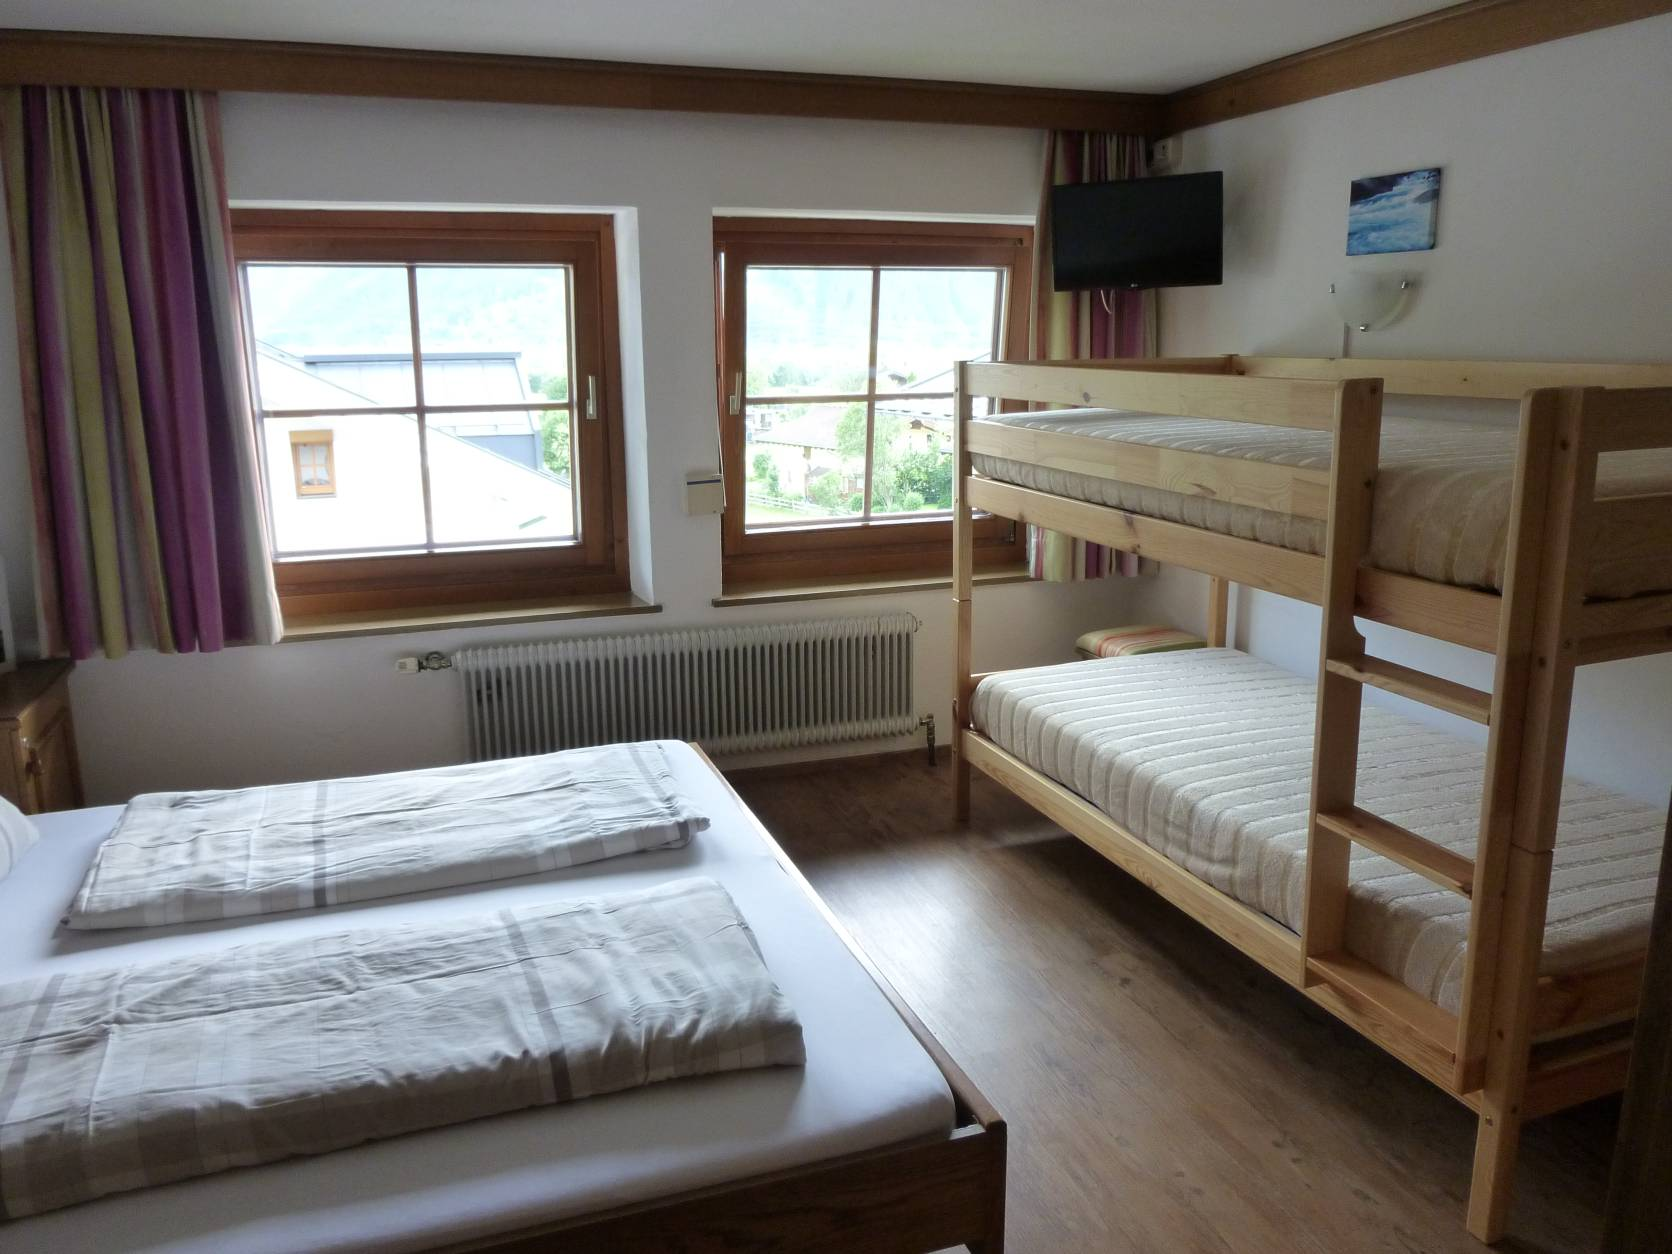 Four-bedded room Pension zu Hause